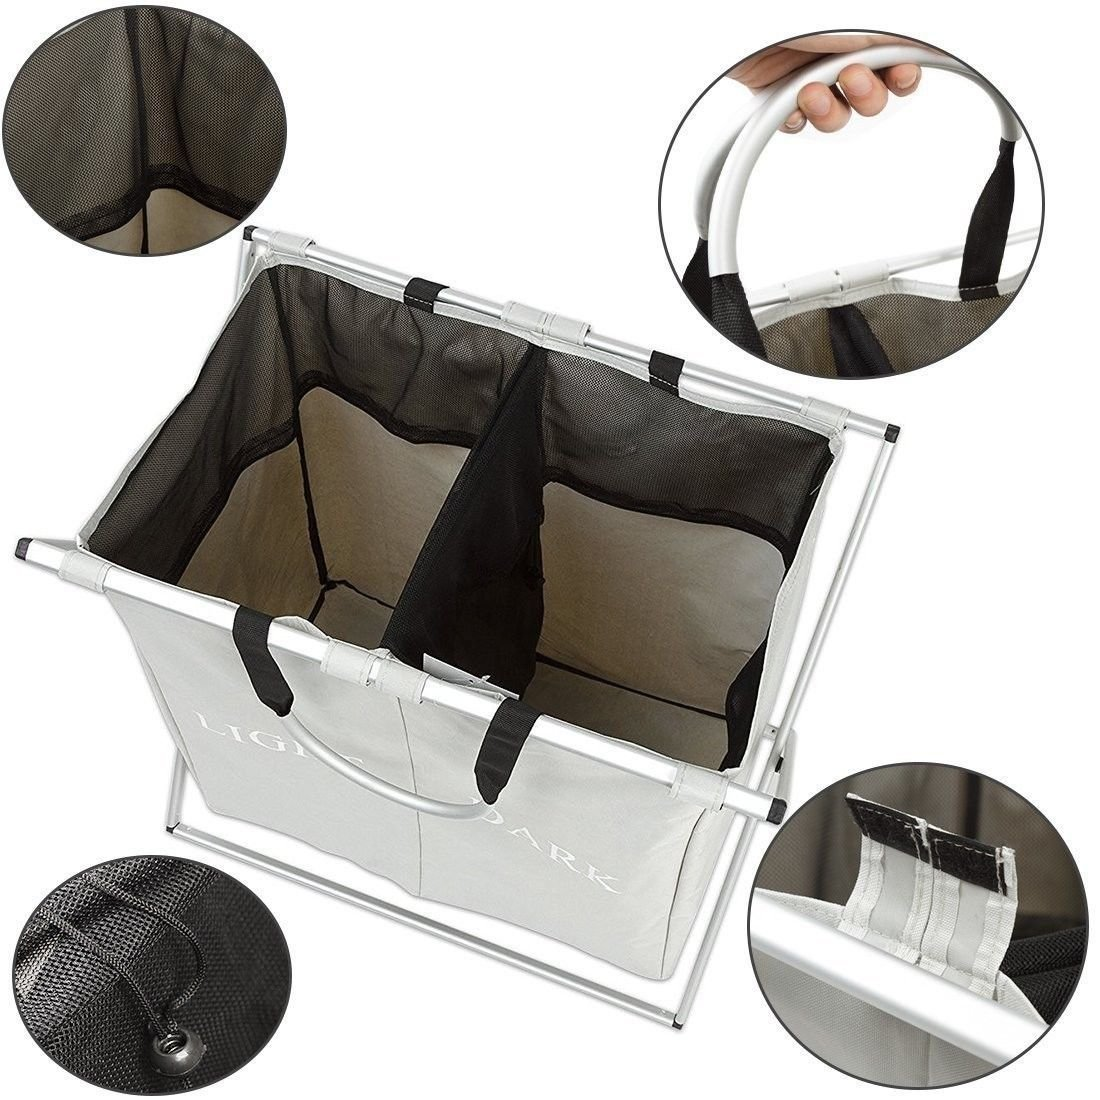 Double Laundry Hamper Sorter with Waterproof Bags,Foldable 2 Sections Durable Dirty Laundry Basket Clothes Bag for Bathroom Bedroom Home